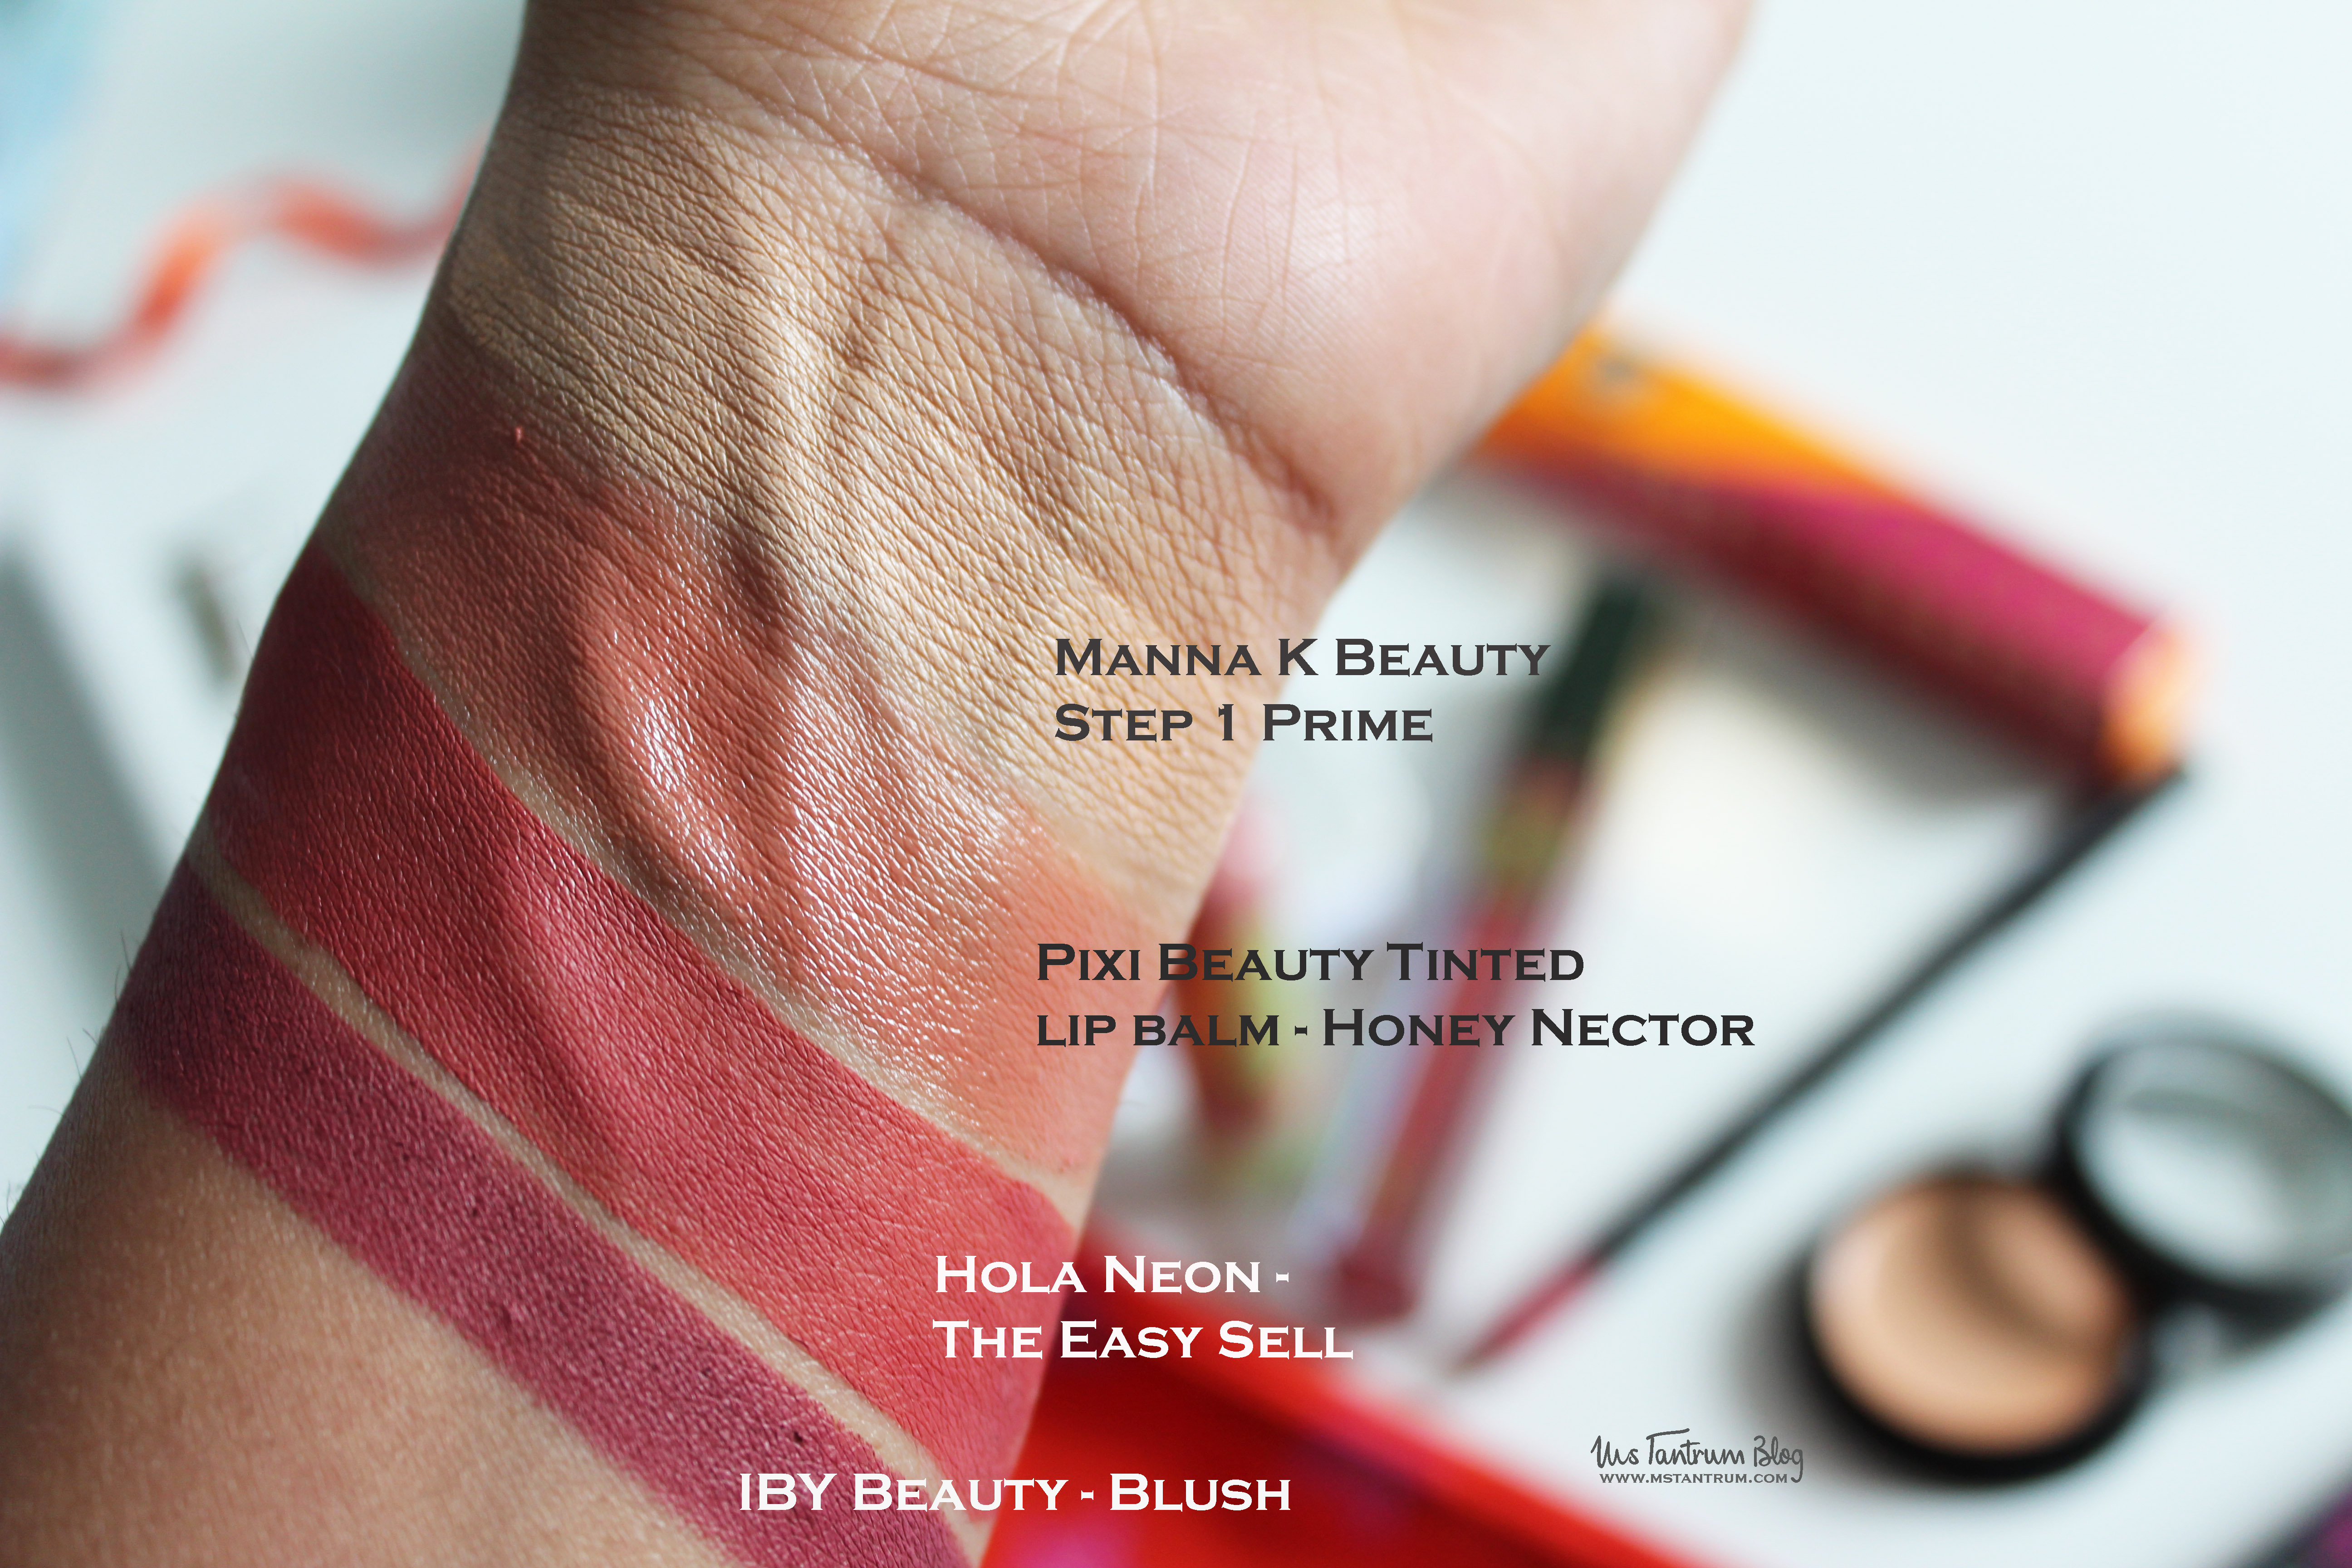 Lip Monthly swatches - Manna K step 1 prime, pixi beauty tinted lip balm - honey nectar, hola neon - The Easy Sell, Iby Beauty - Blush